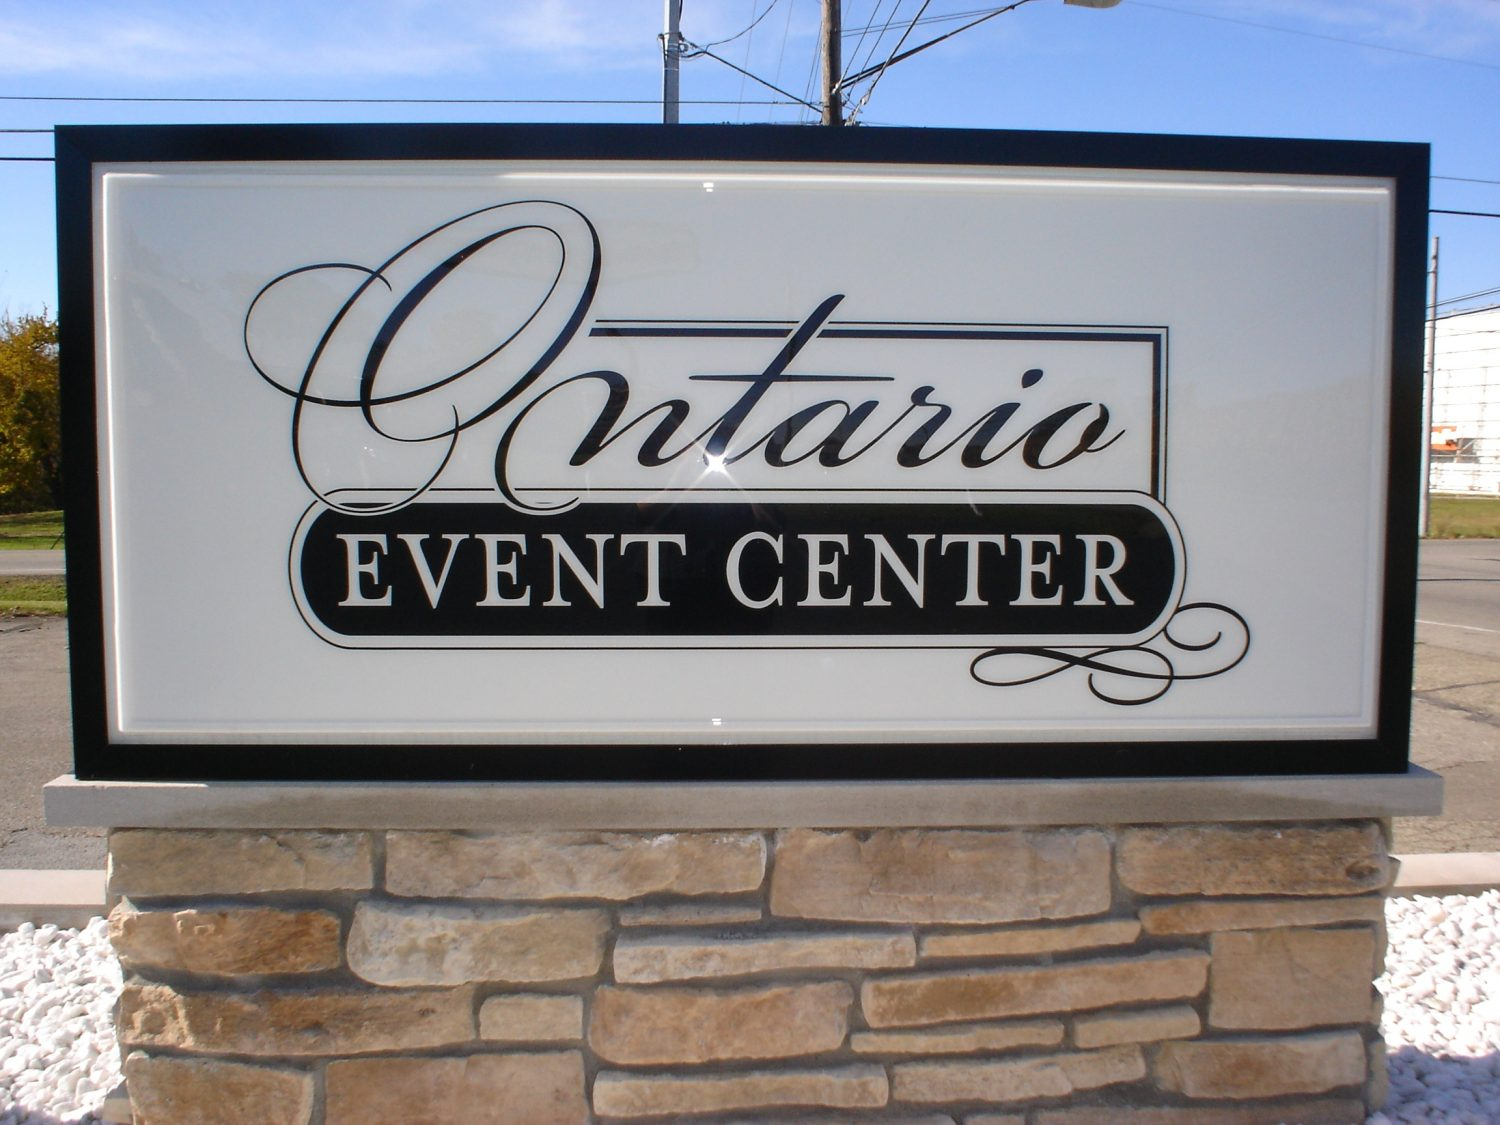 Meeting Spotlight: Ontario Event Center